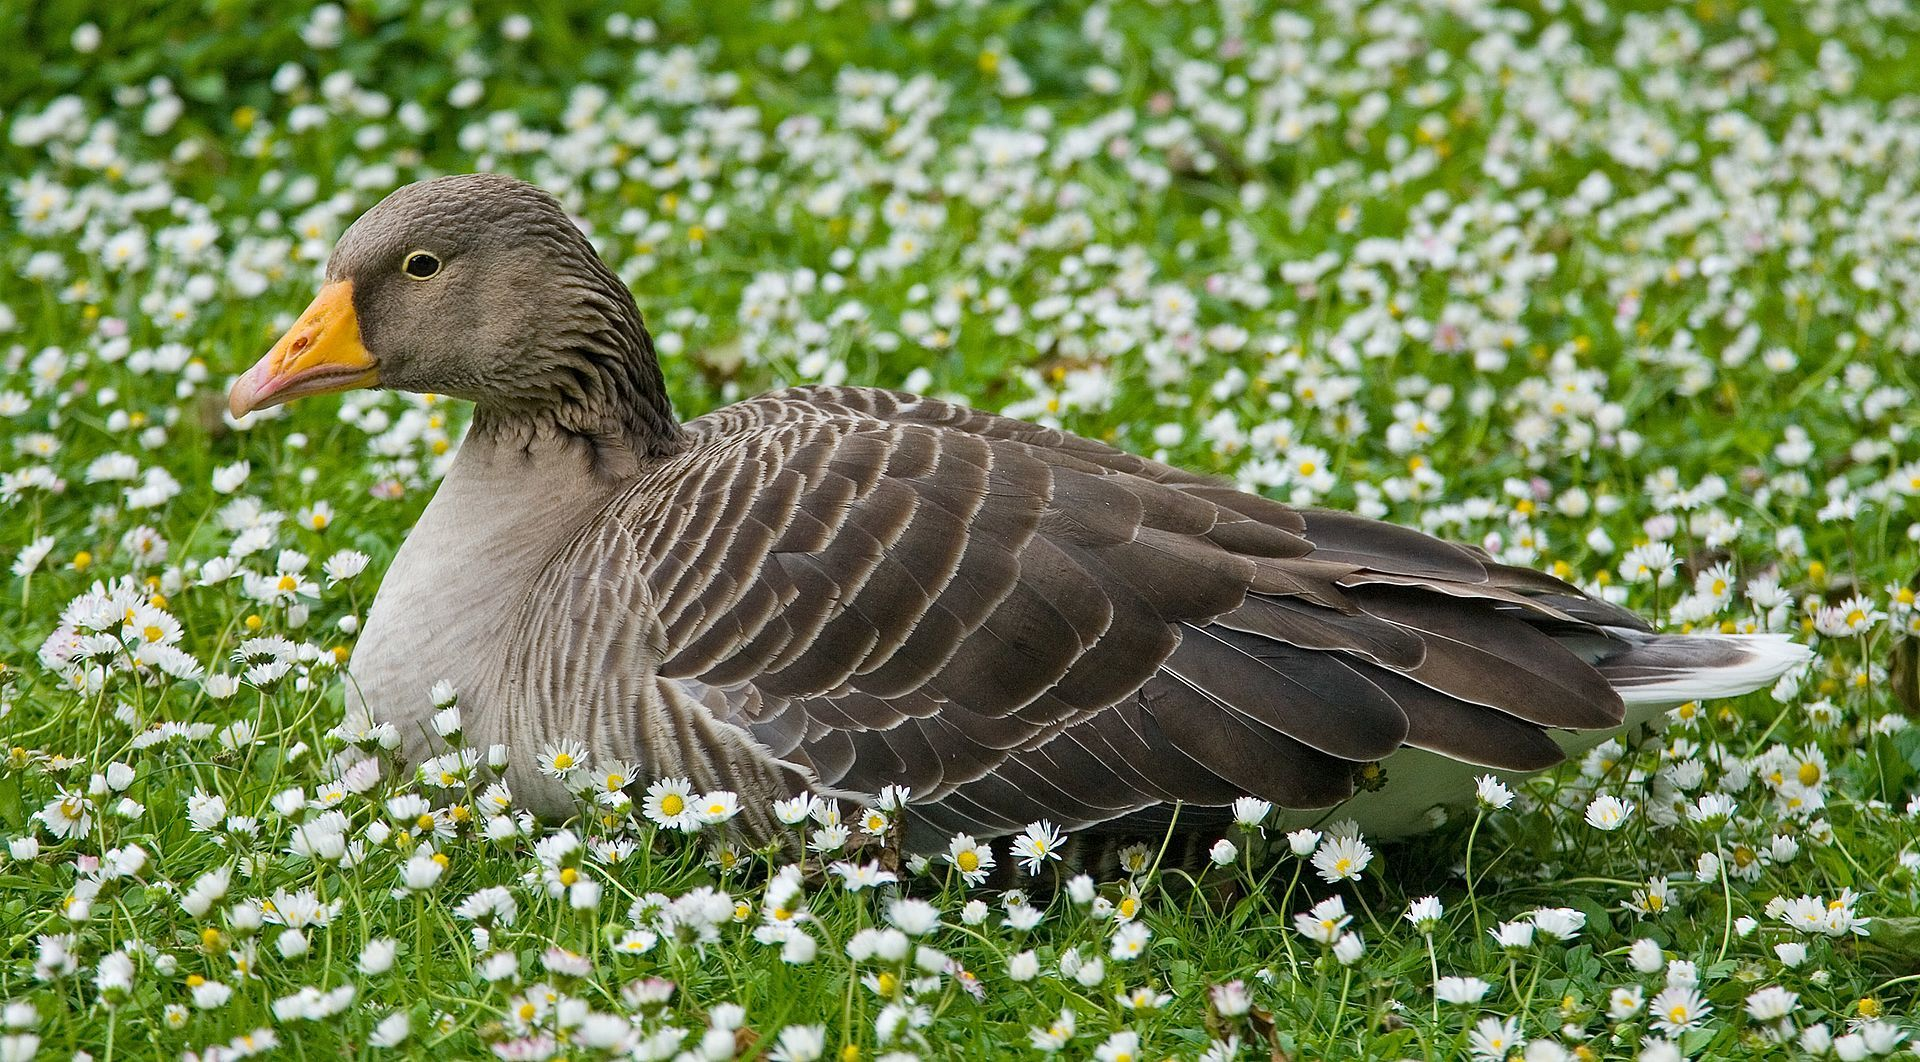 Greylag_Goose_in_St_Jamess_Park,_London_-_May_2006ミシガン州の誠の意味